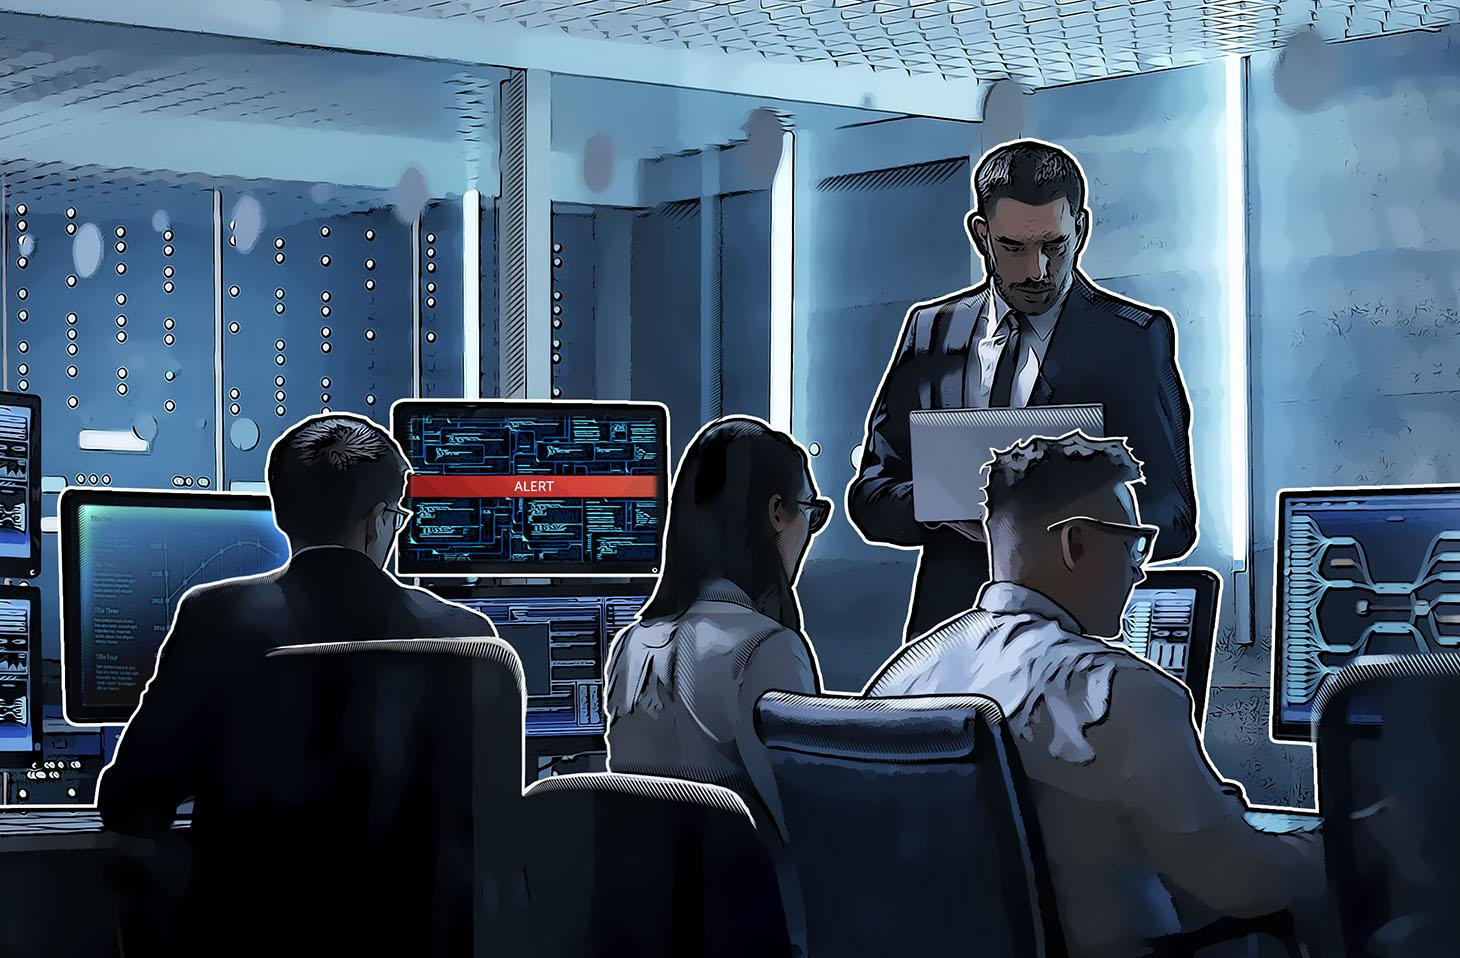 Kaspersky Lab news: Half of Businesses Find it Hard to Identify a Serious Security Breach